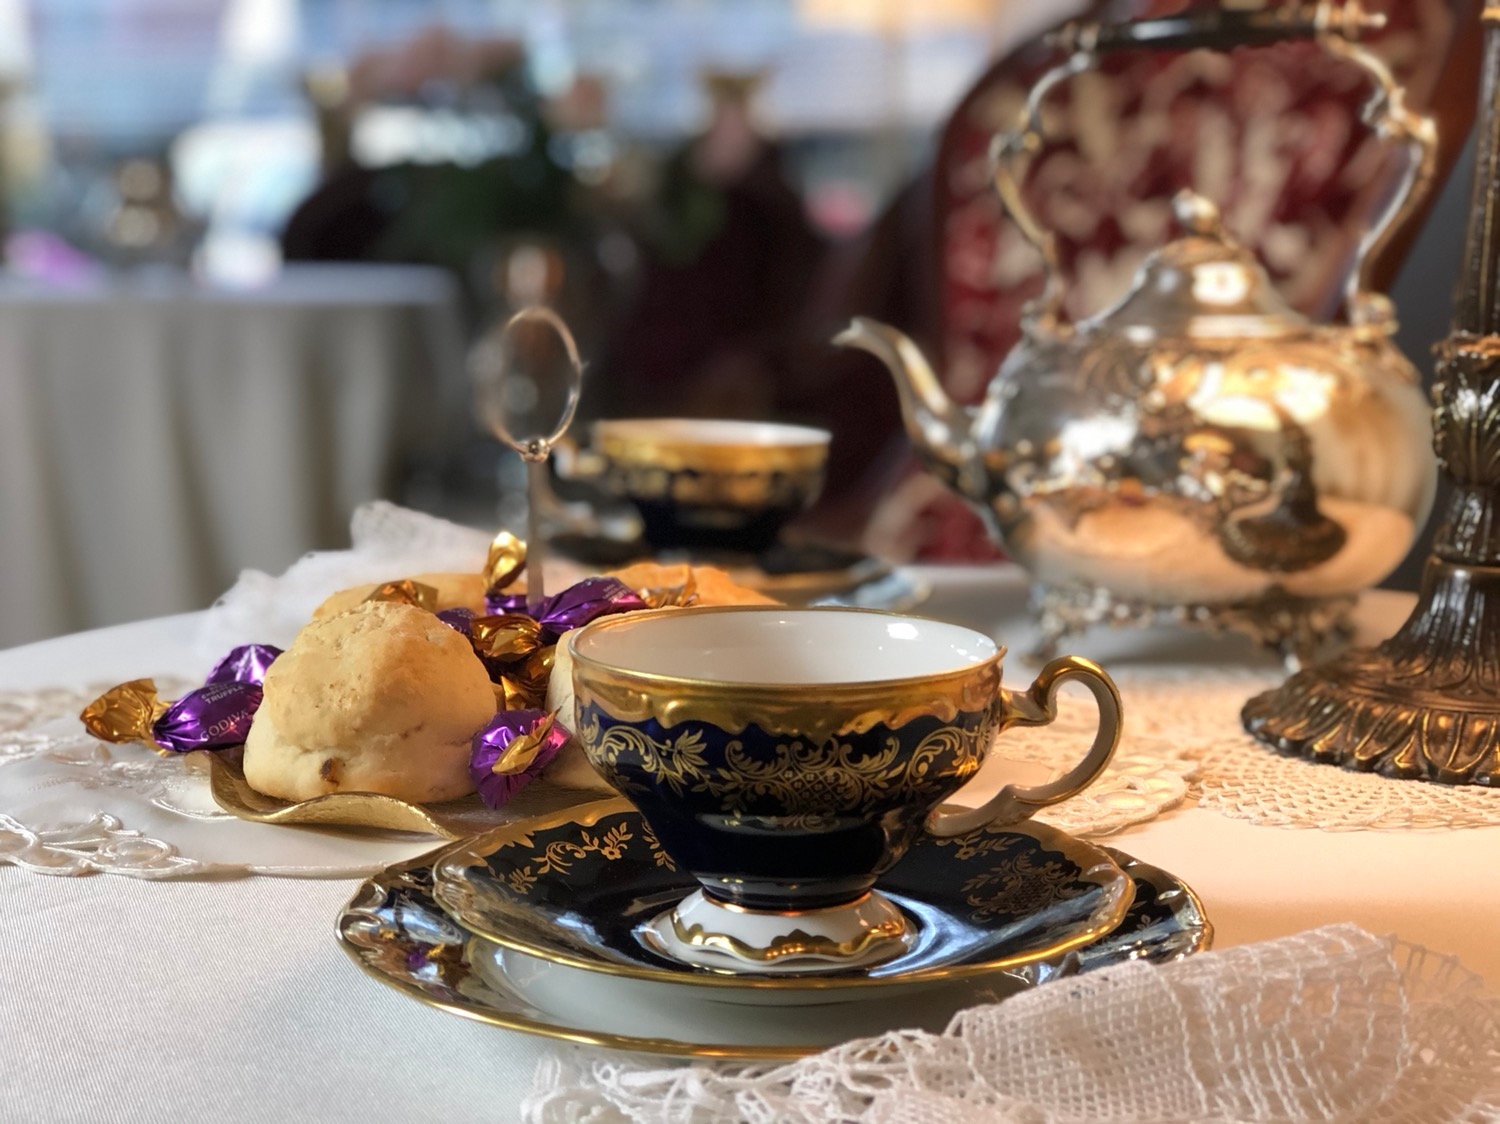 Afternoon Tea Service for One